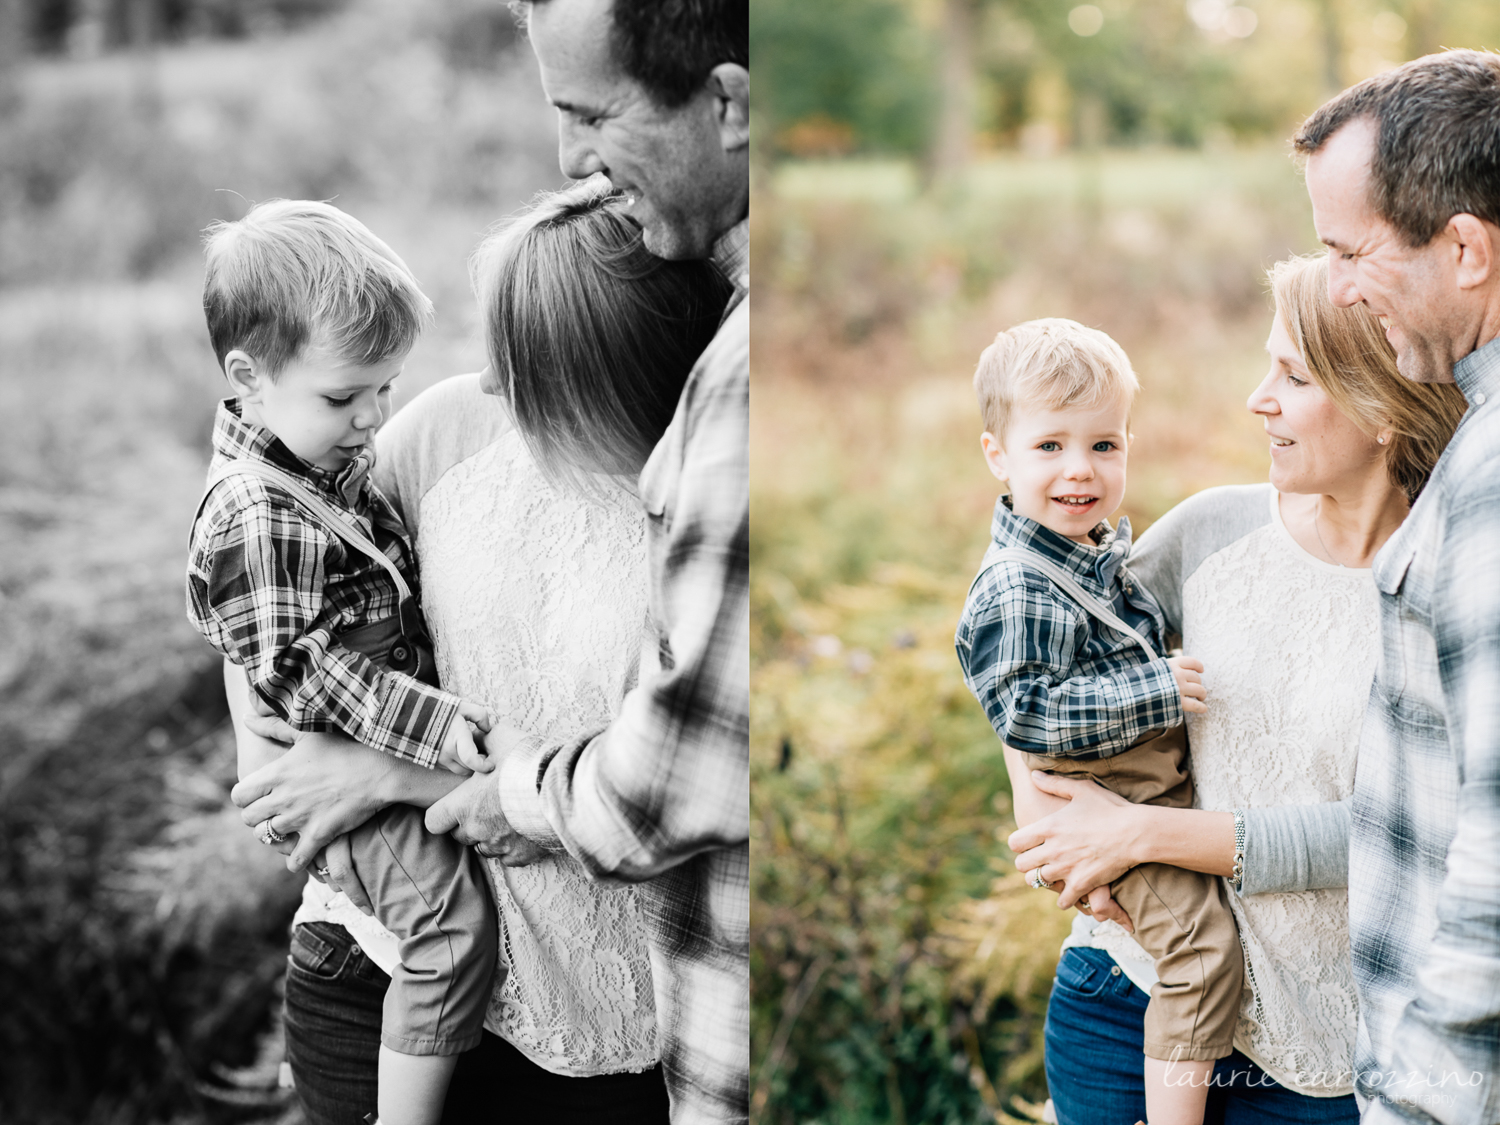 haverfordfamilysession05-2.jpg